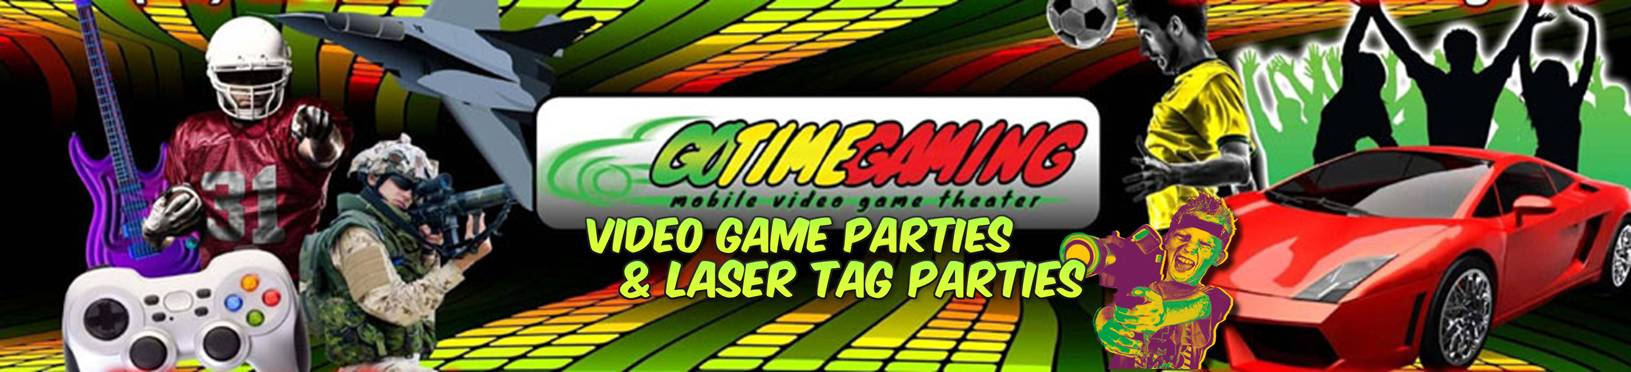 go-time-gaming-video-game-truck-laser-tag-party-north-carolina-header